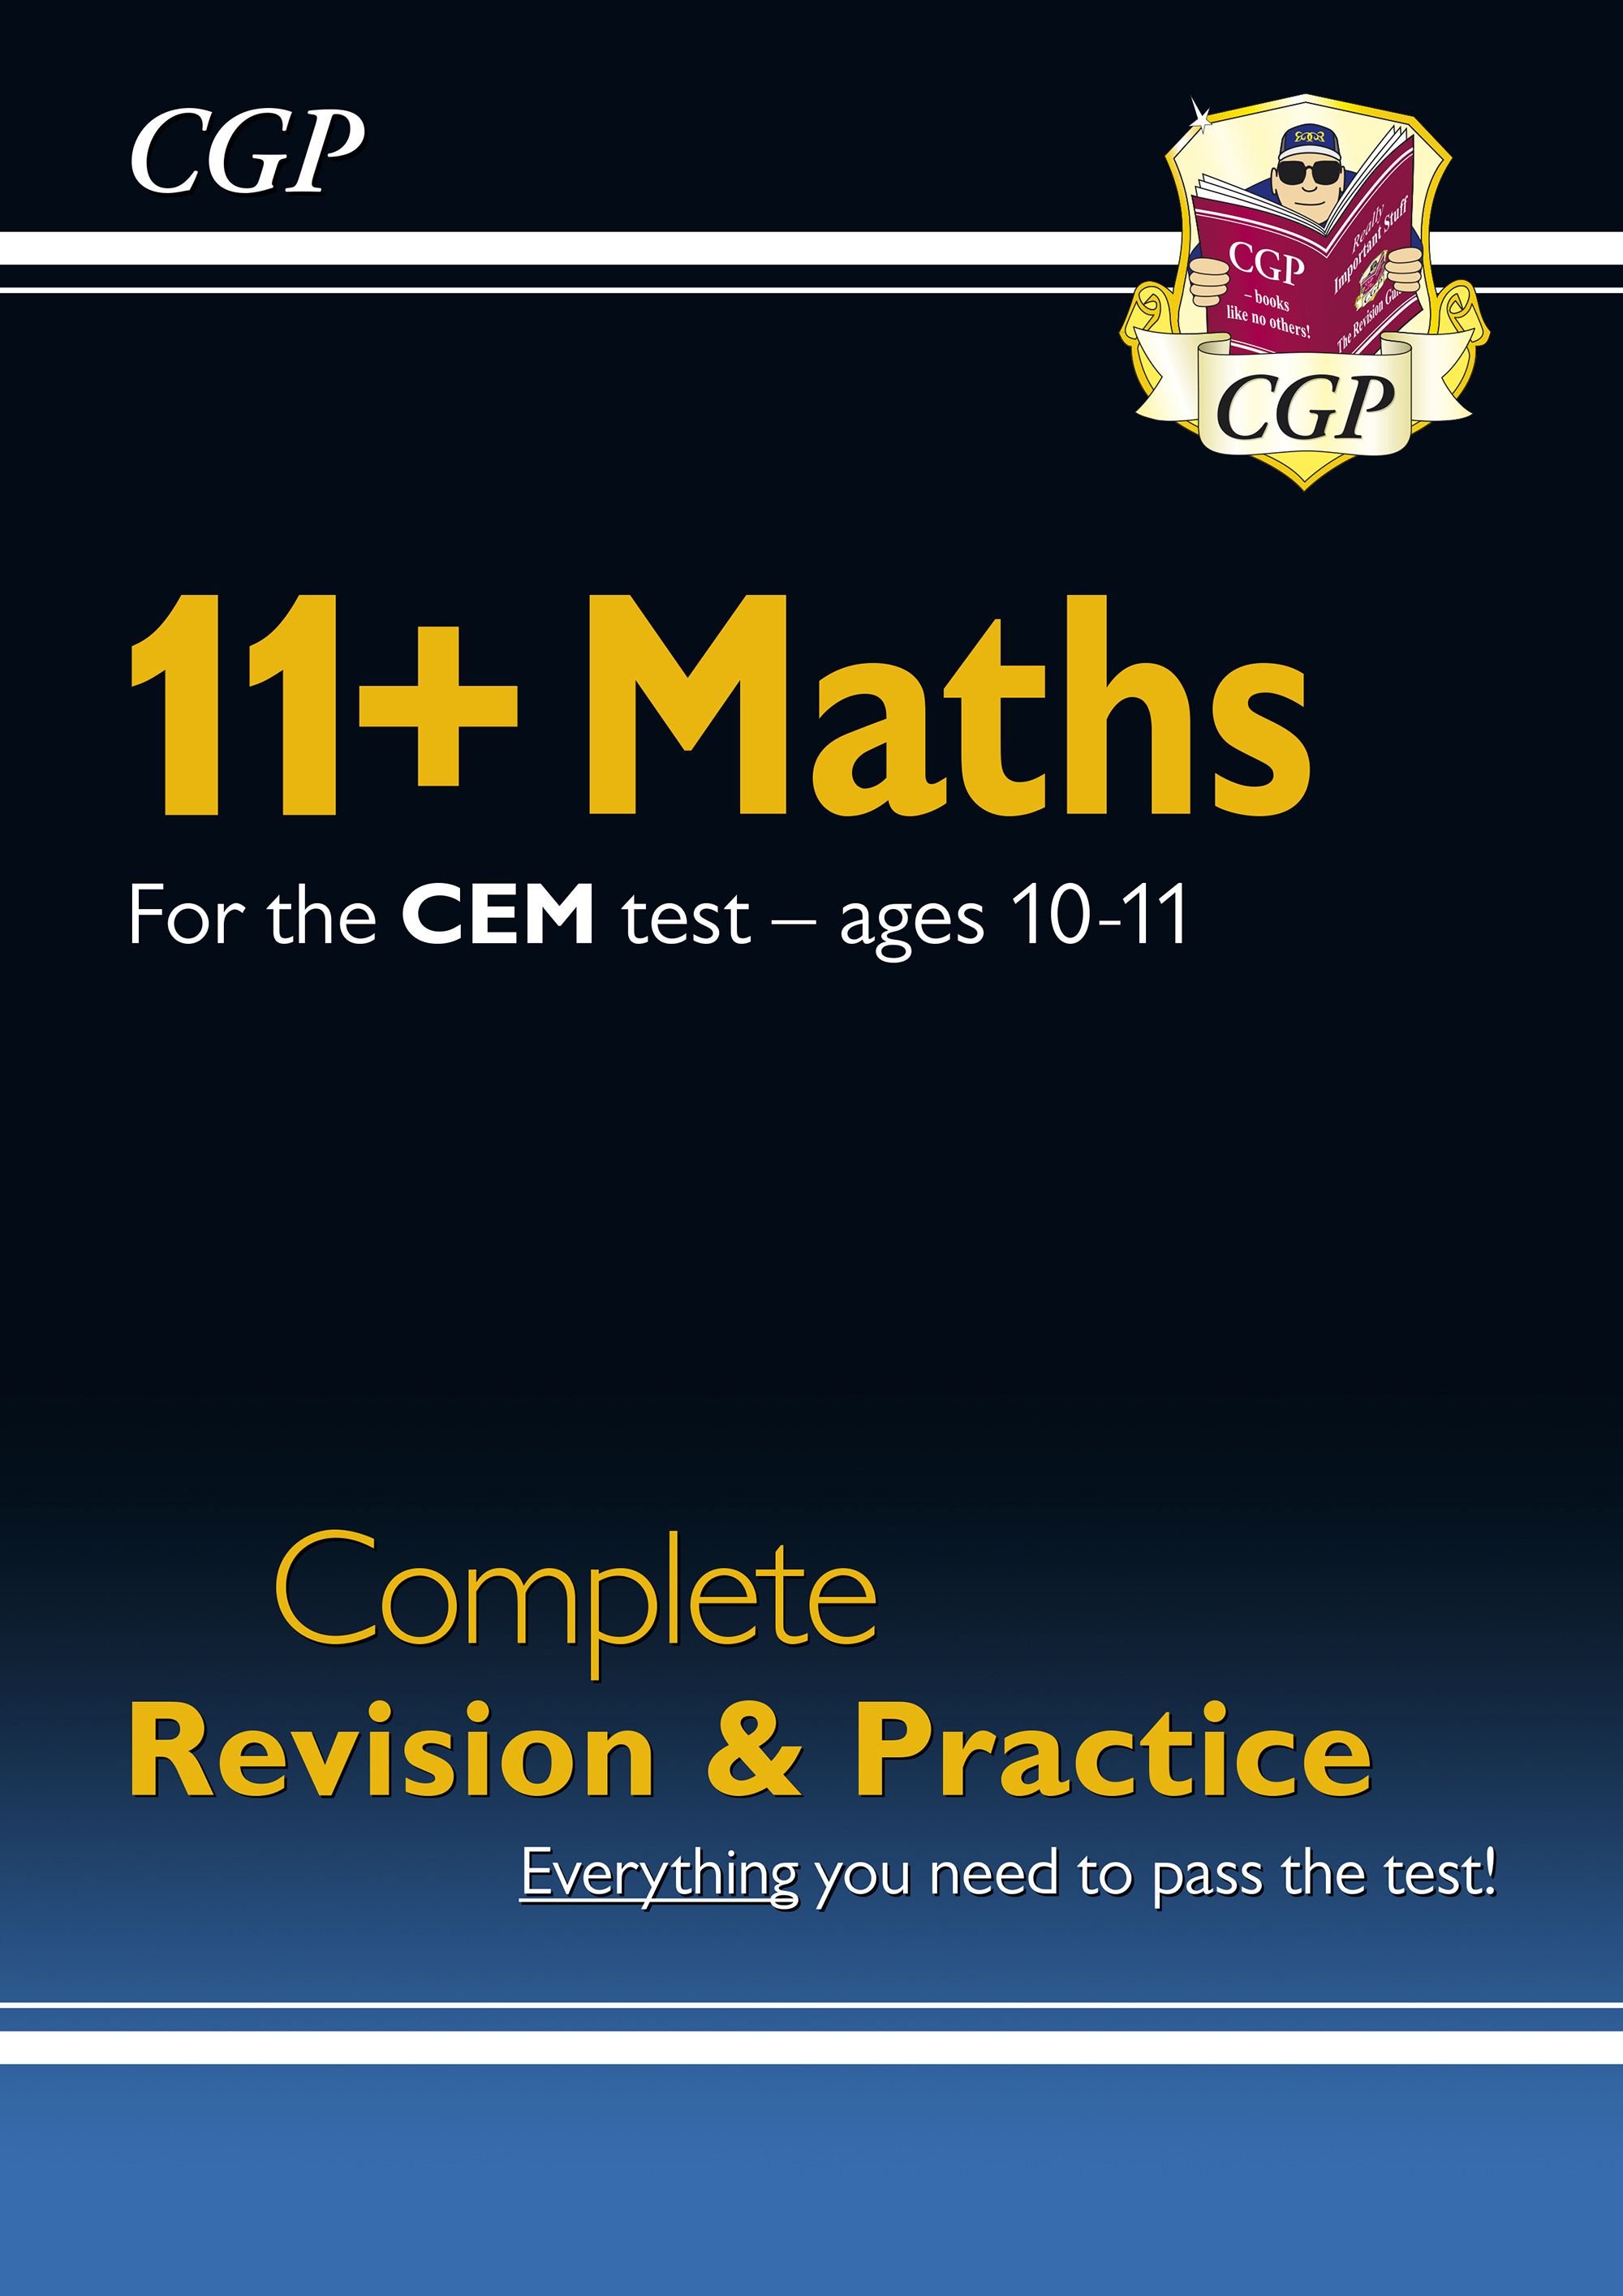 MHSDE1D - New 11+ CEM Maths Complete Revision and Practice - Ages 10-11 Online Edition